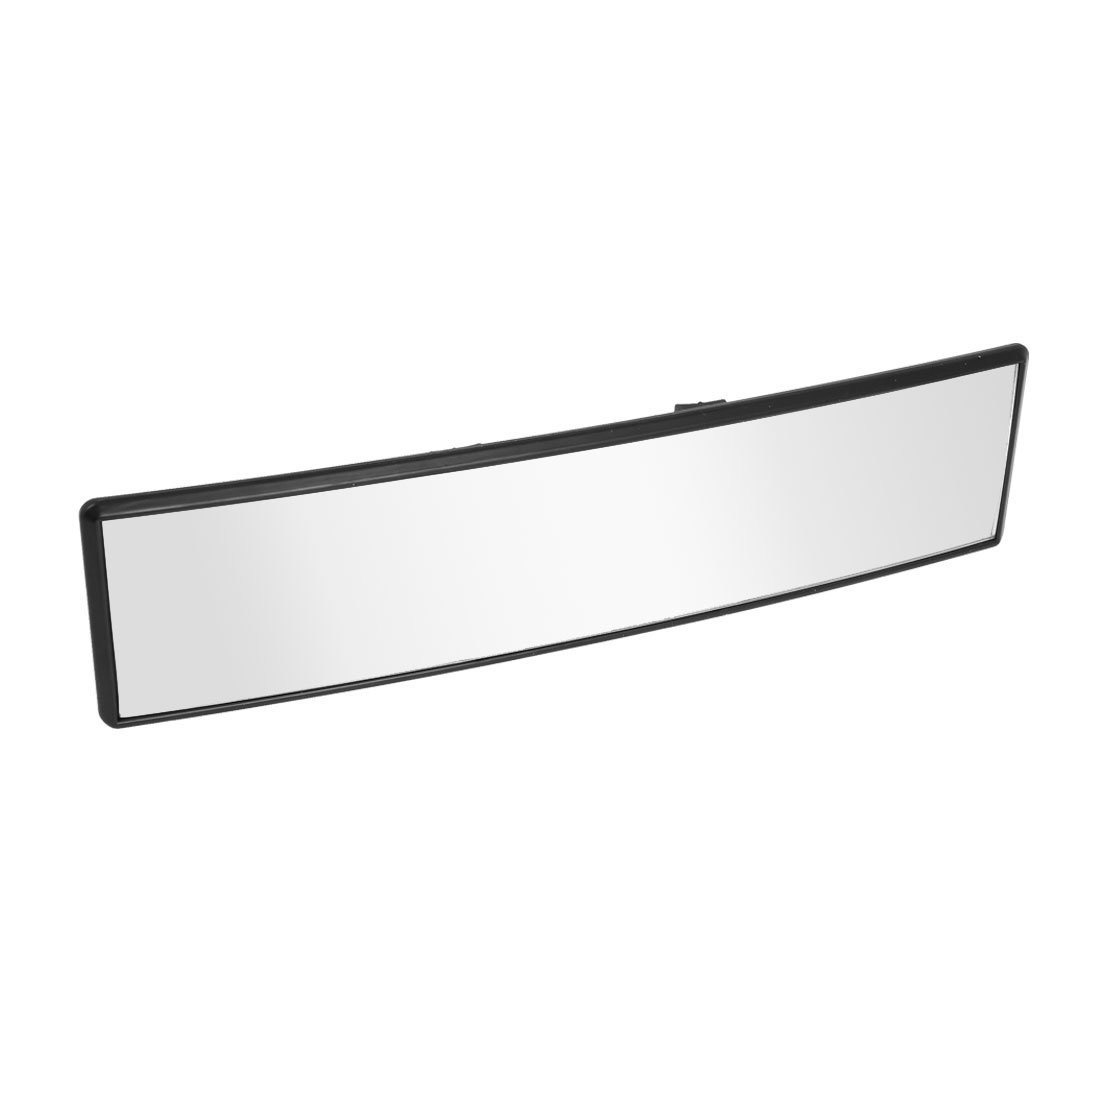 300 mm wide curve panorama back inside black frame and elegant appearance nice accessories for your car